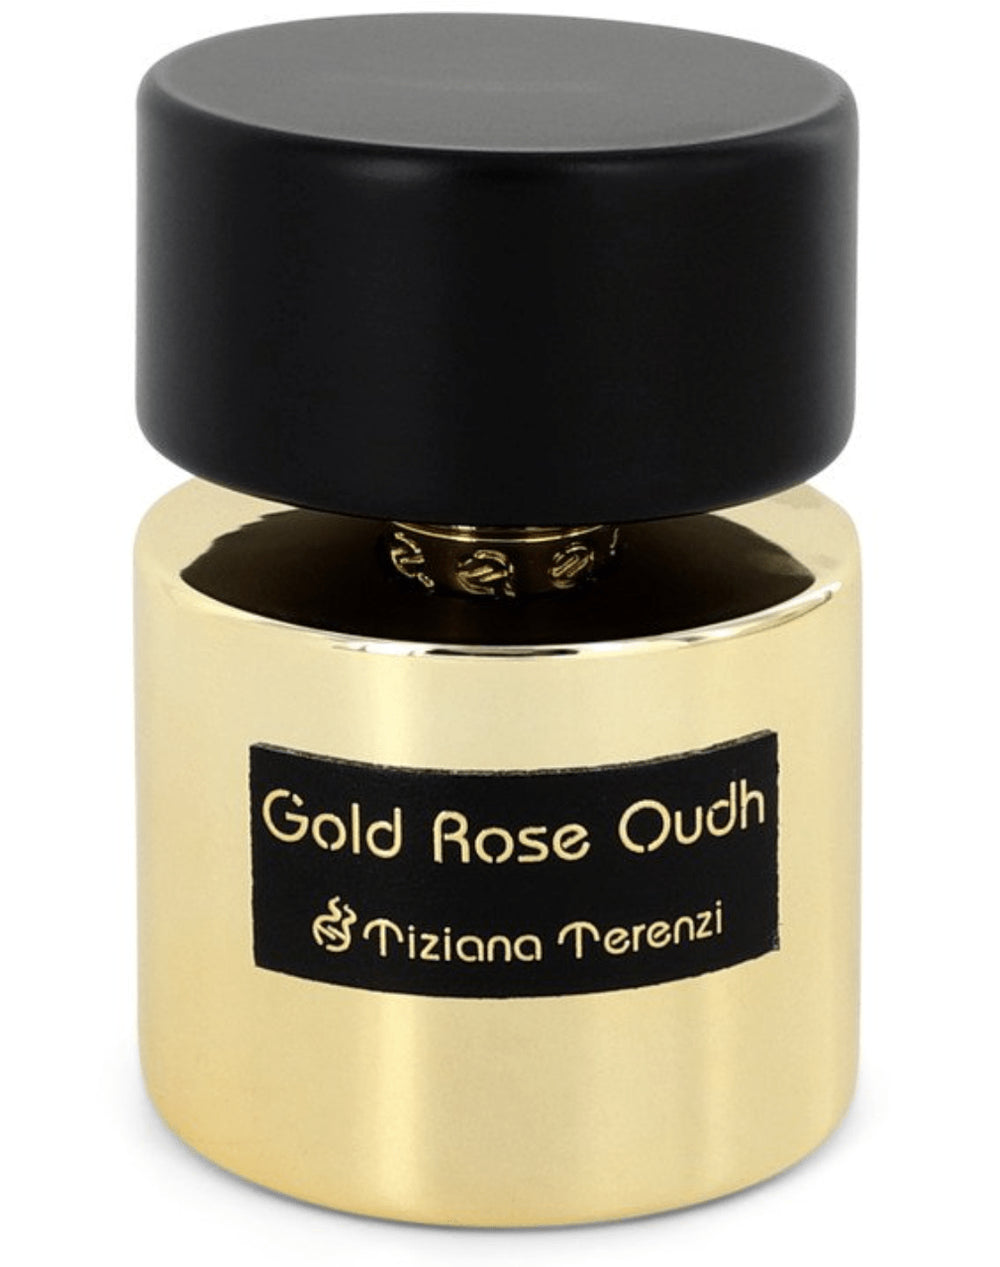 Gold Rose Oudh by Tiziana Terenzi